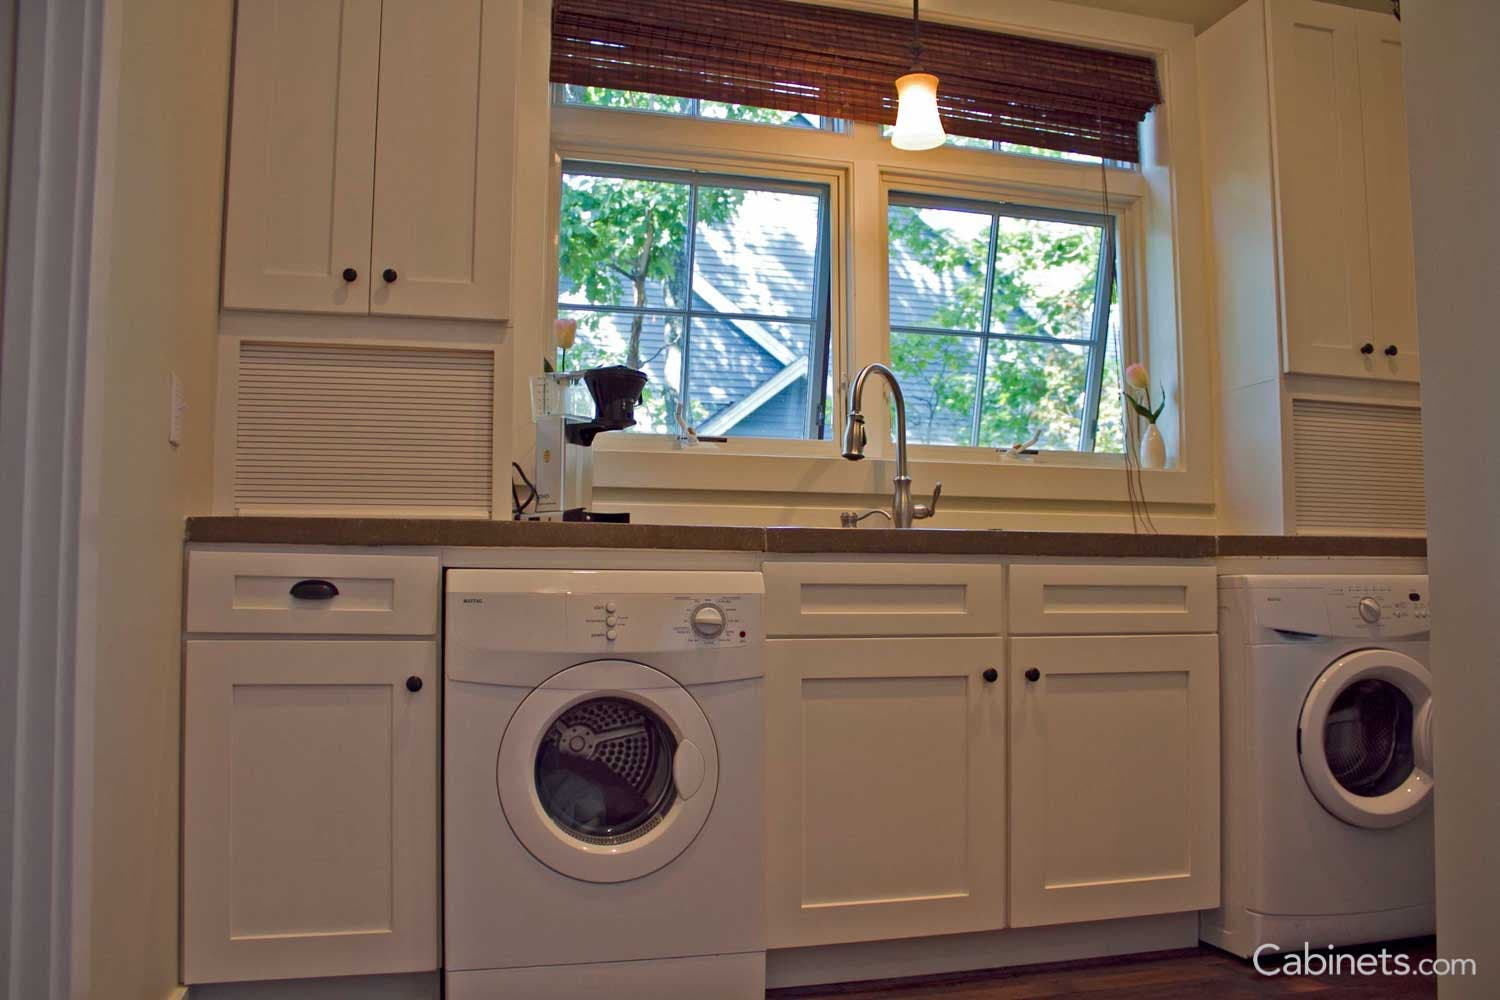 Laundry Room Design Ideas Cabinets Com